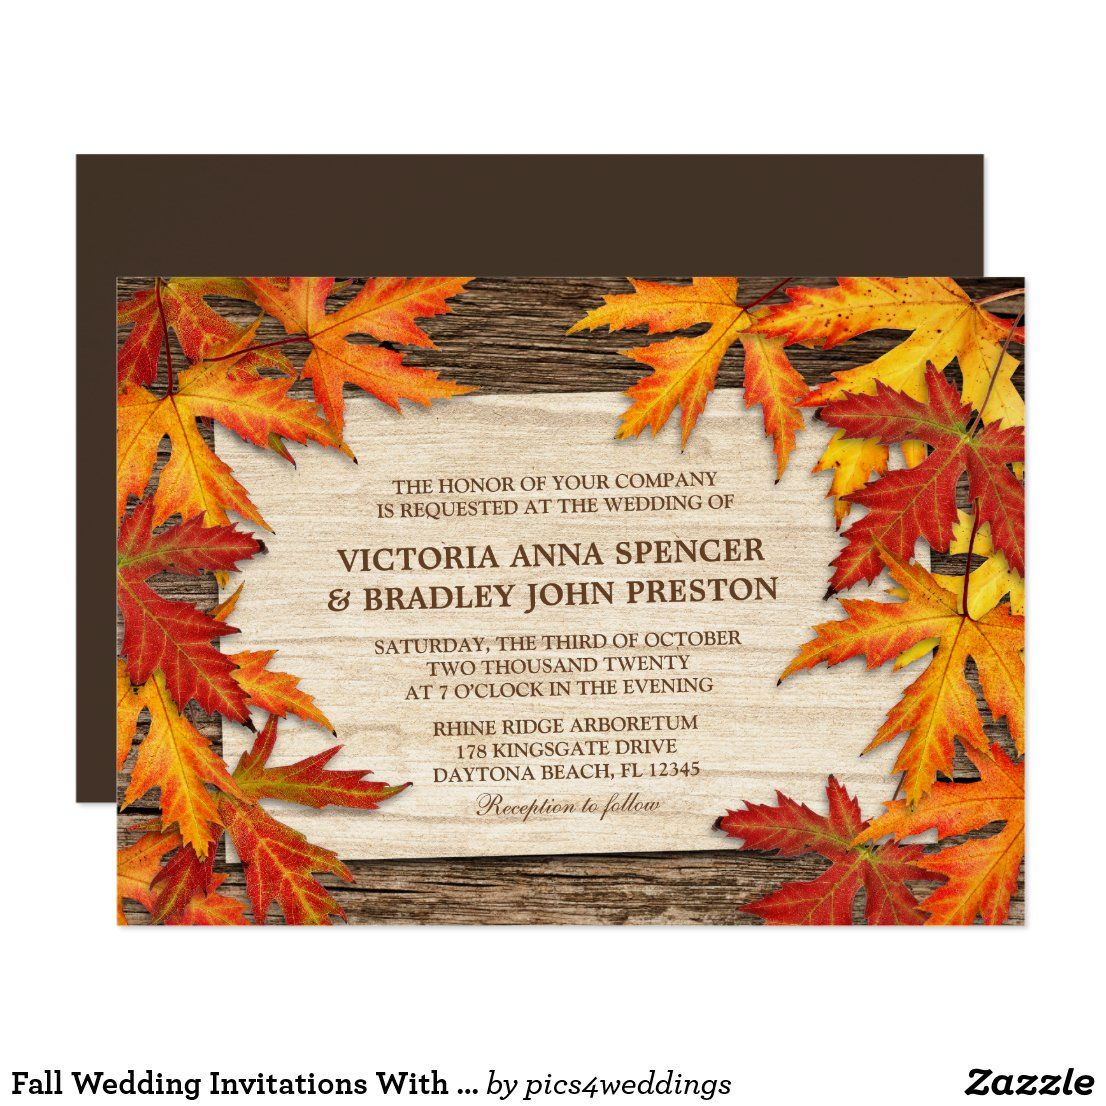 Fall Wedding Invitations With Autumn Leaves Zazzle Com In 2020 Fall Wedding Invitations Thanksgiving Dinner Invitation Autumn Wedding Reception